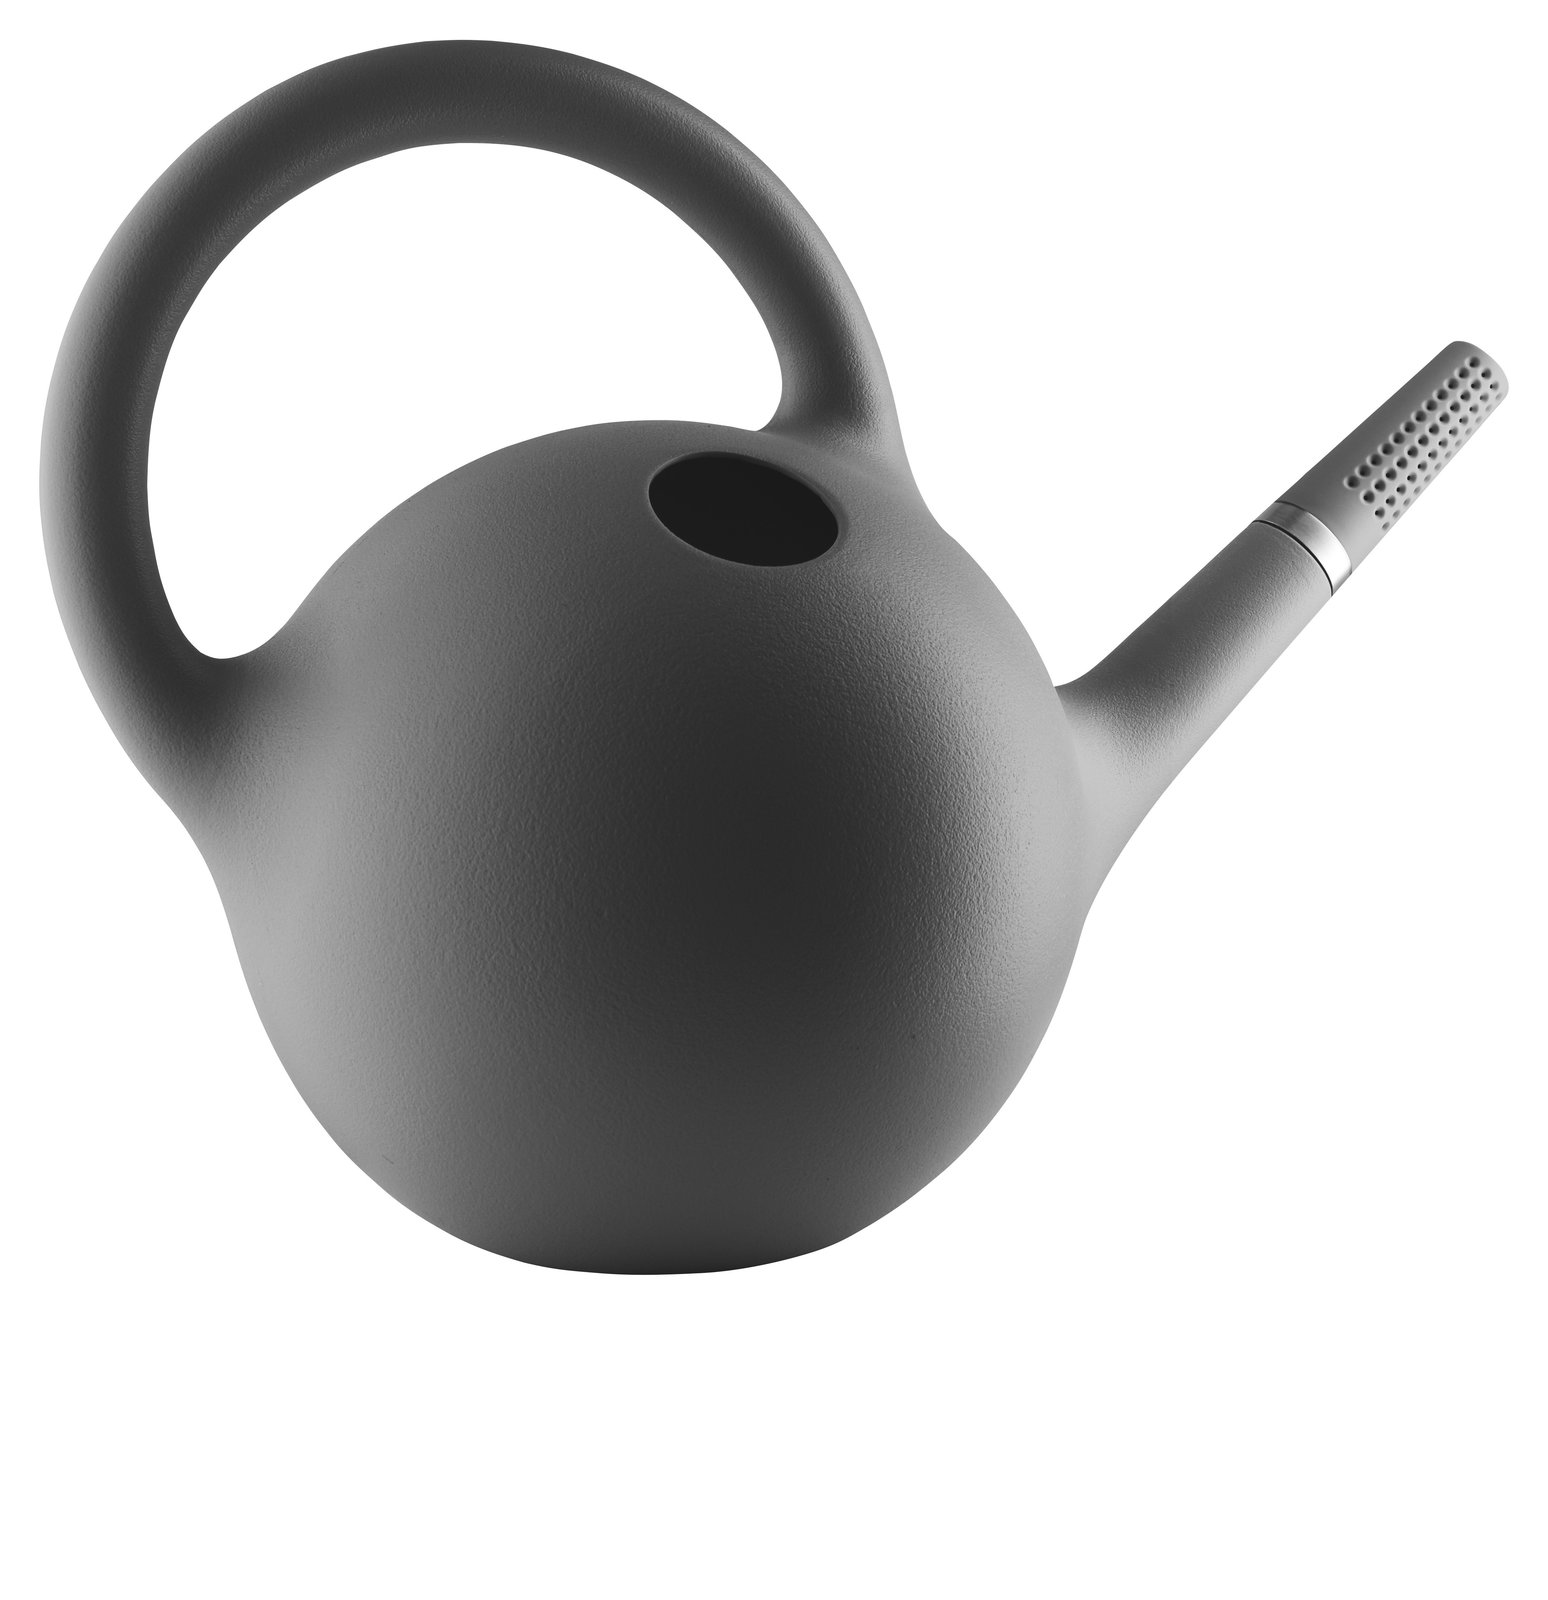 In addition to its cool shape, the Globe watering can by Tools Design for Eva Solo ($59) has an offset hole for easy filling, an easy-to-grip handle, and a dual-function spout that changes from jet to spray. Best of all, it's drip-free.  Photo 20 of 24 in 24 Outdoor Products for Every Kind of Summer Plan